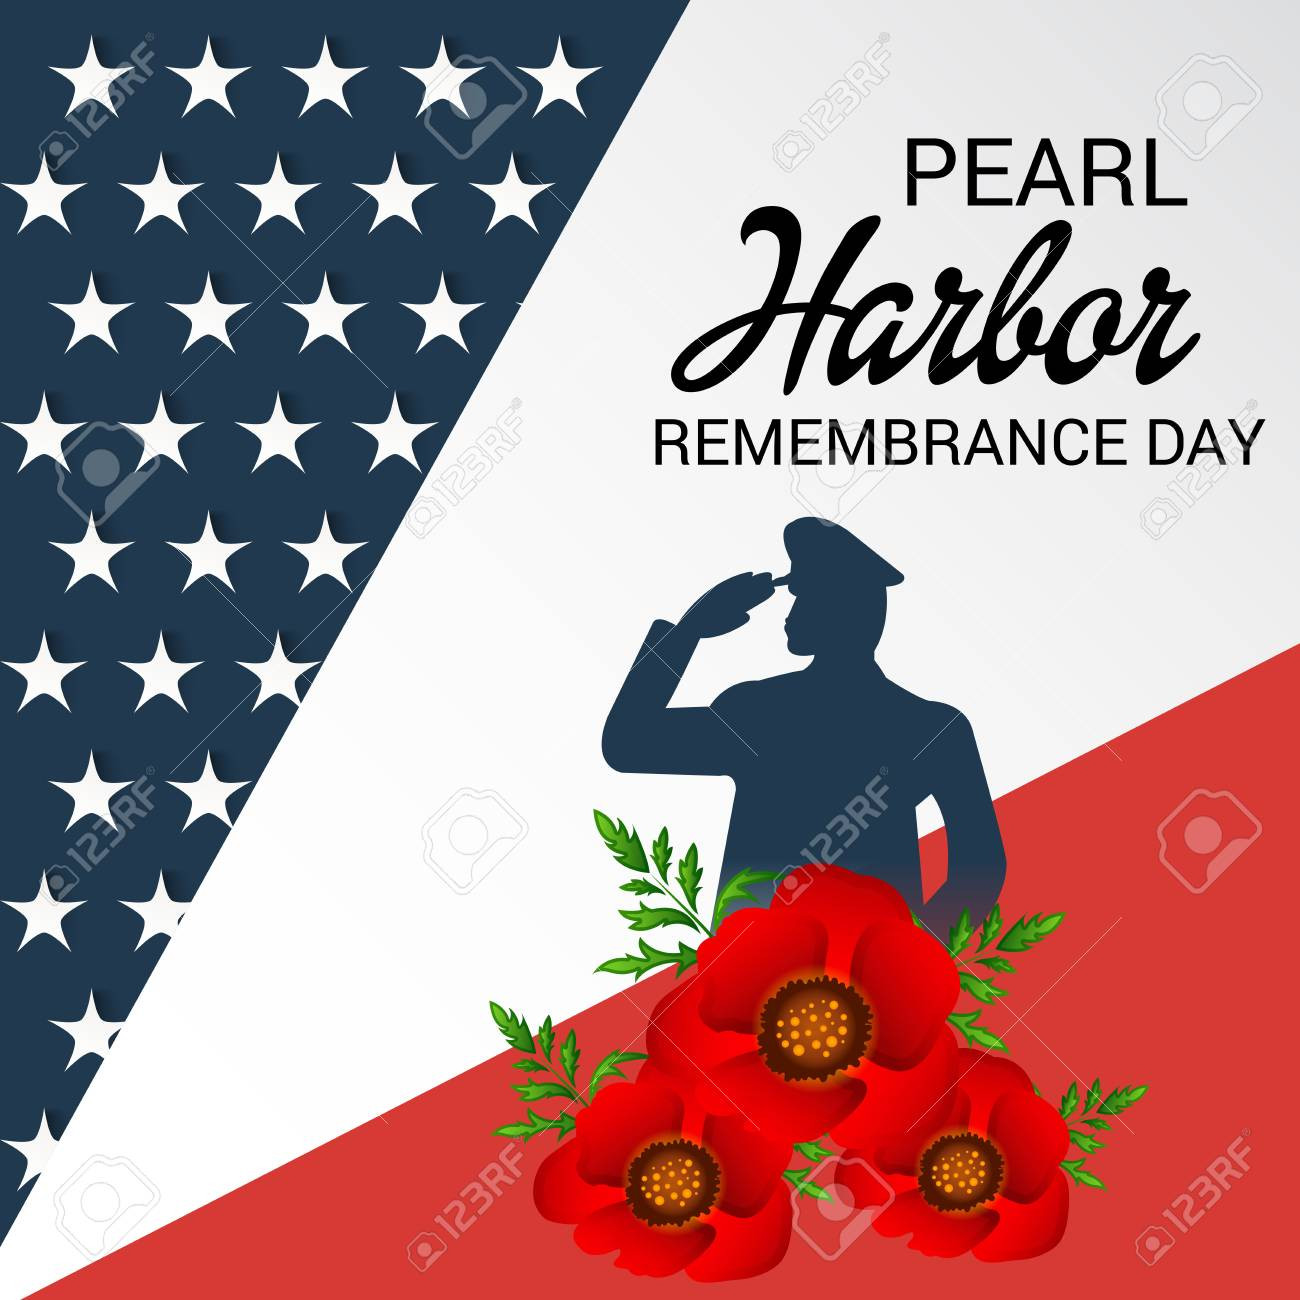 pearl harbor remembrance day 2020